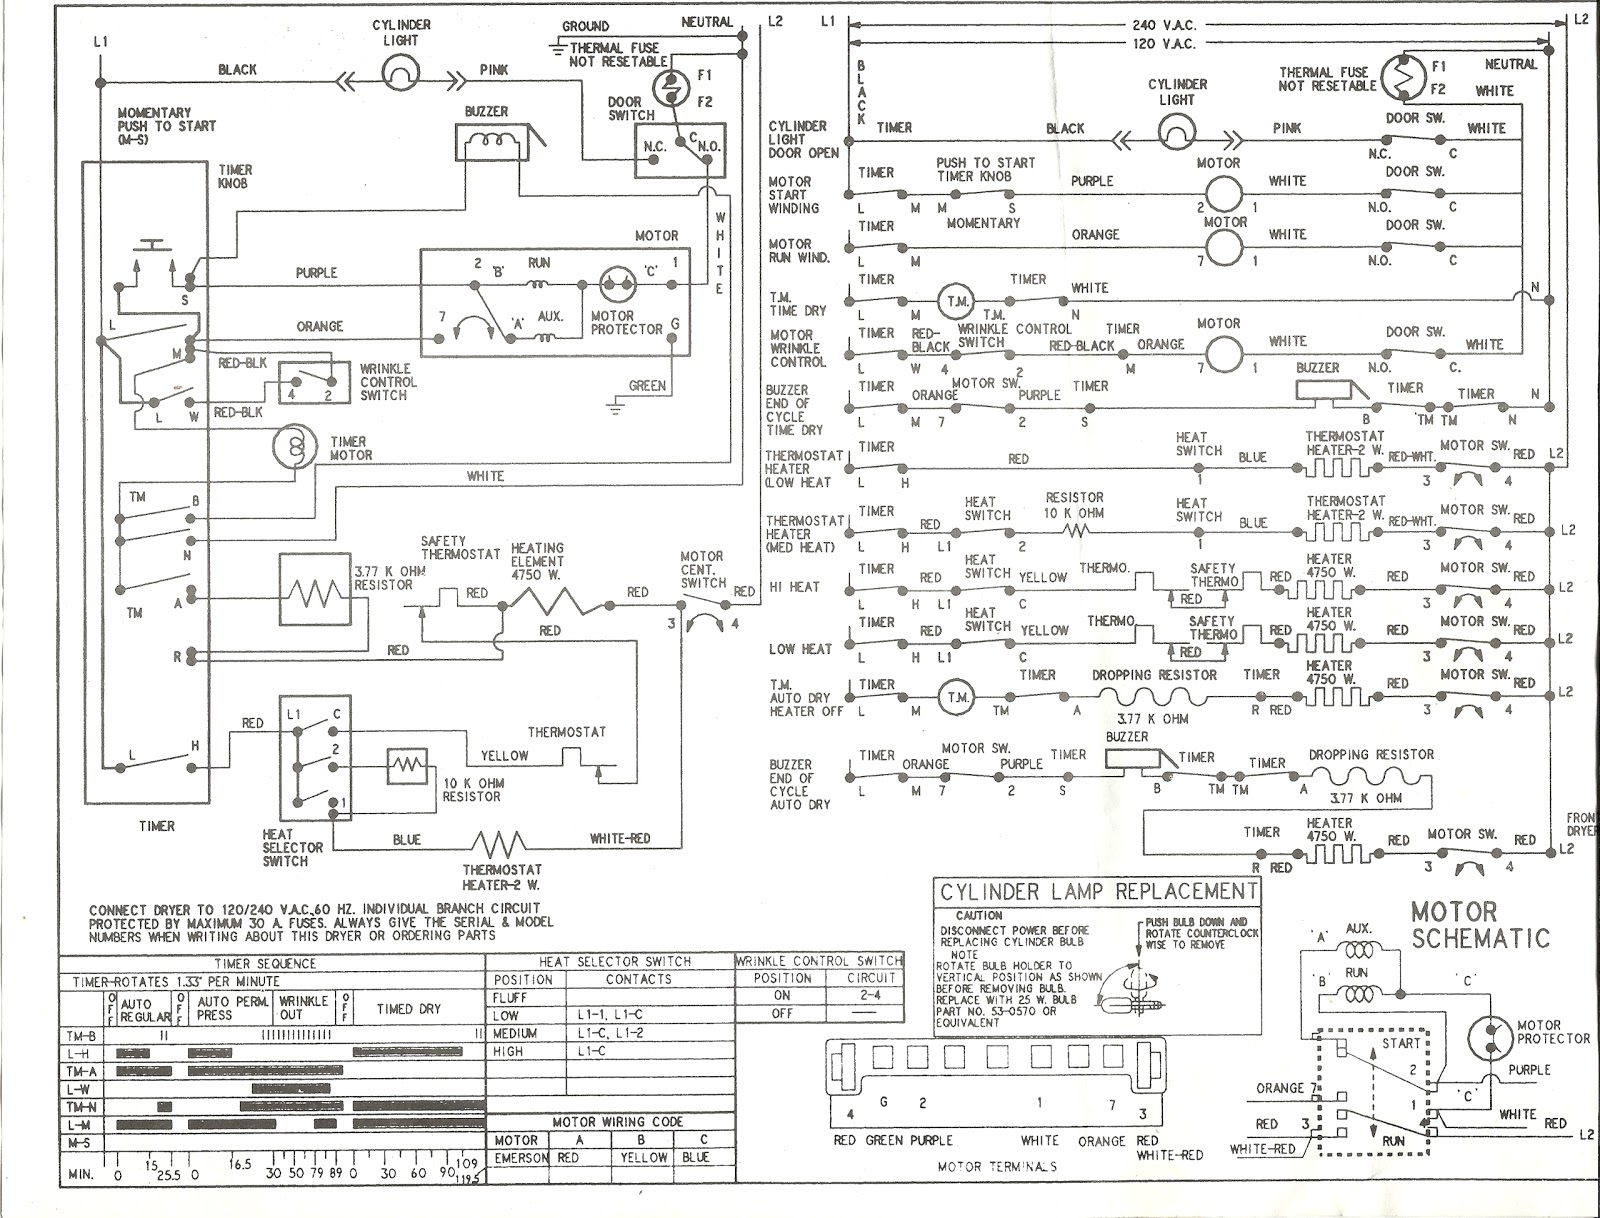 kenmore washer wiring diagram on wiring diagram parts wiring for kenmore 80 series washer parts diagram wiring diagram for whirlpool washer on wiring download wirning  at crackthecode.co